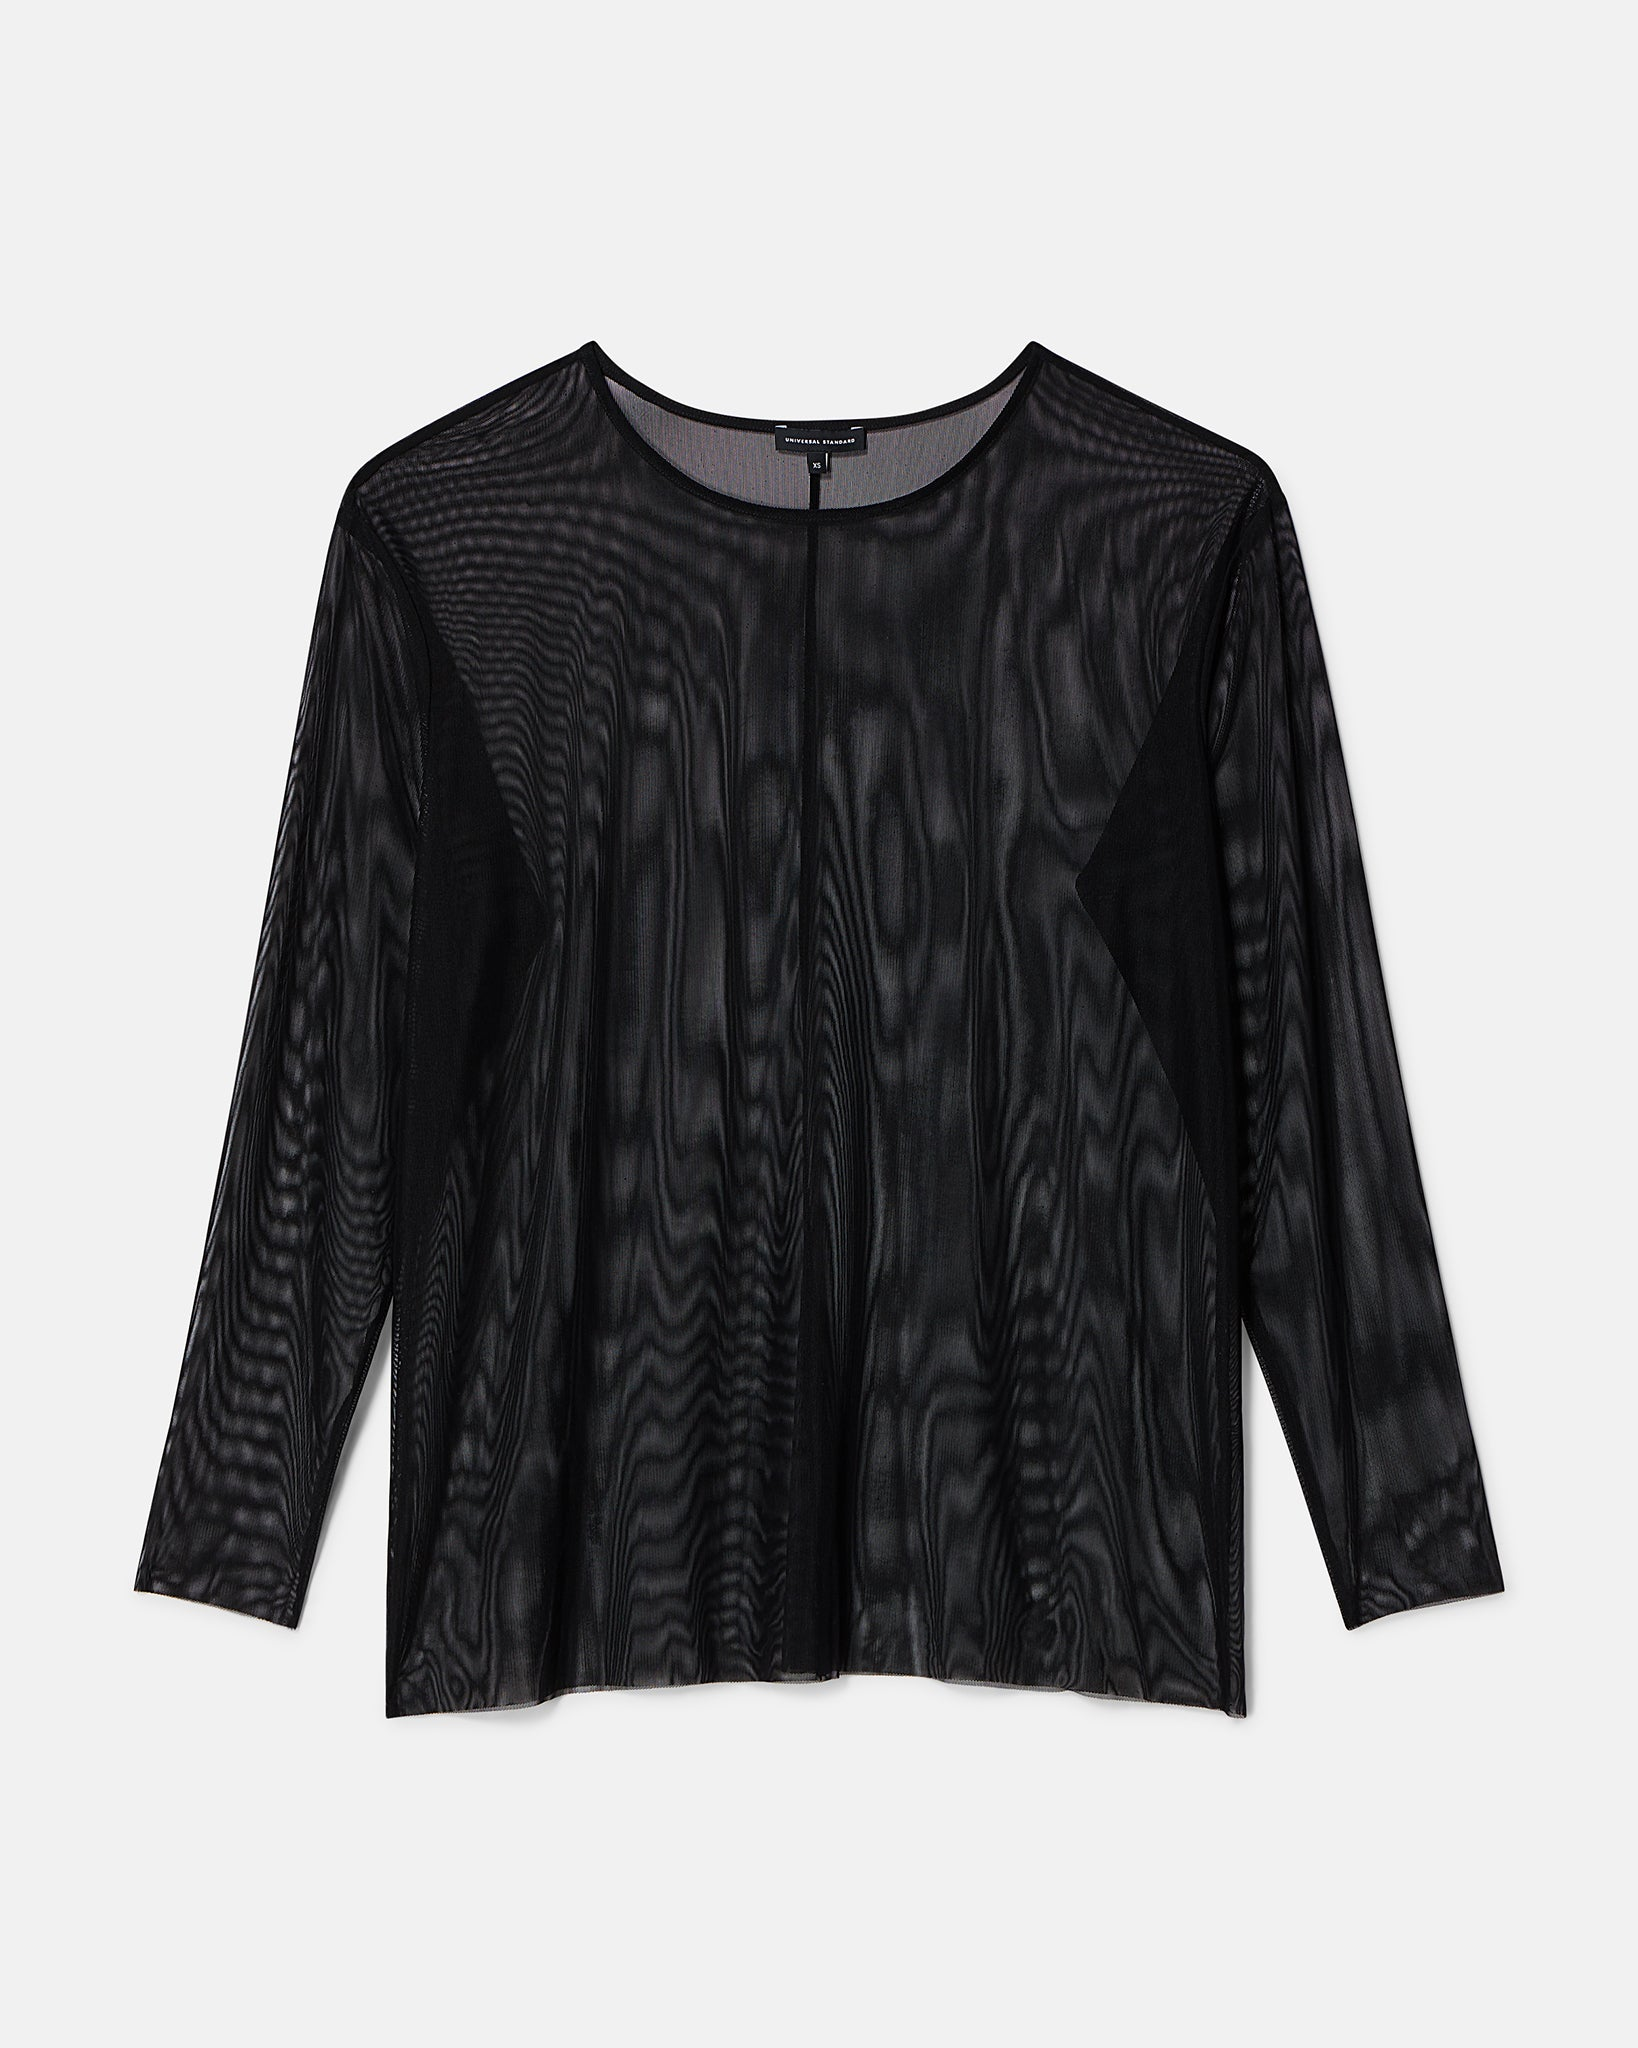 Thames Fog Top - Black